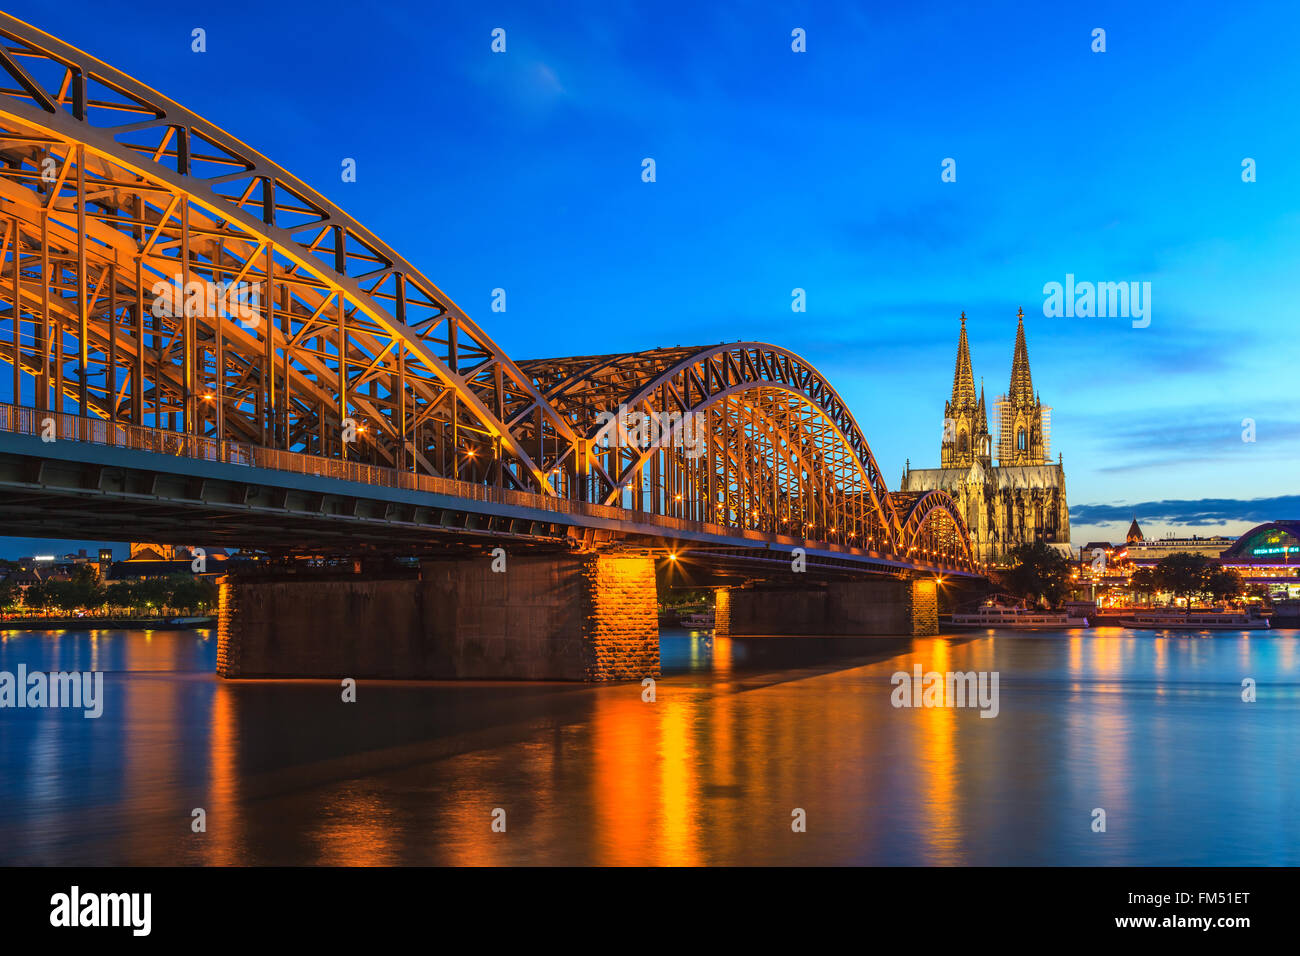 Cologne Cathedral at night, Cologne, Germany - Stock Image